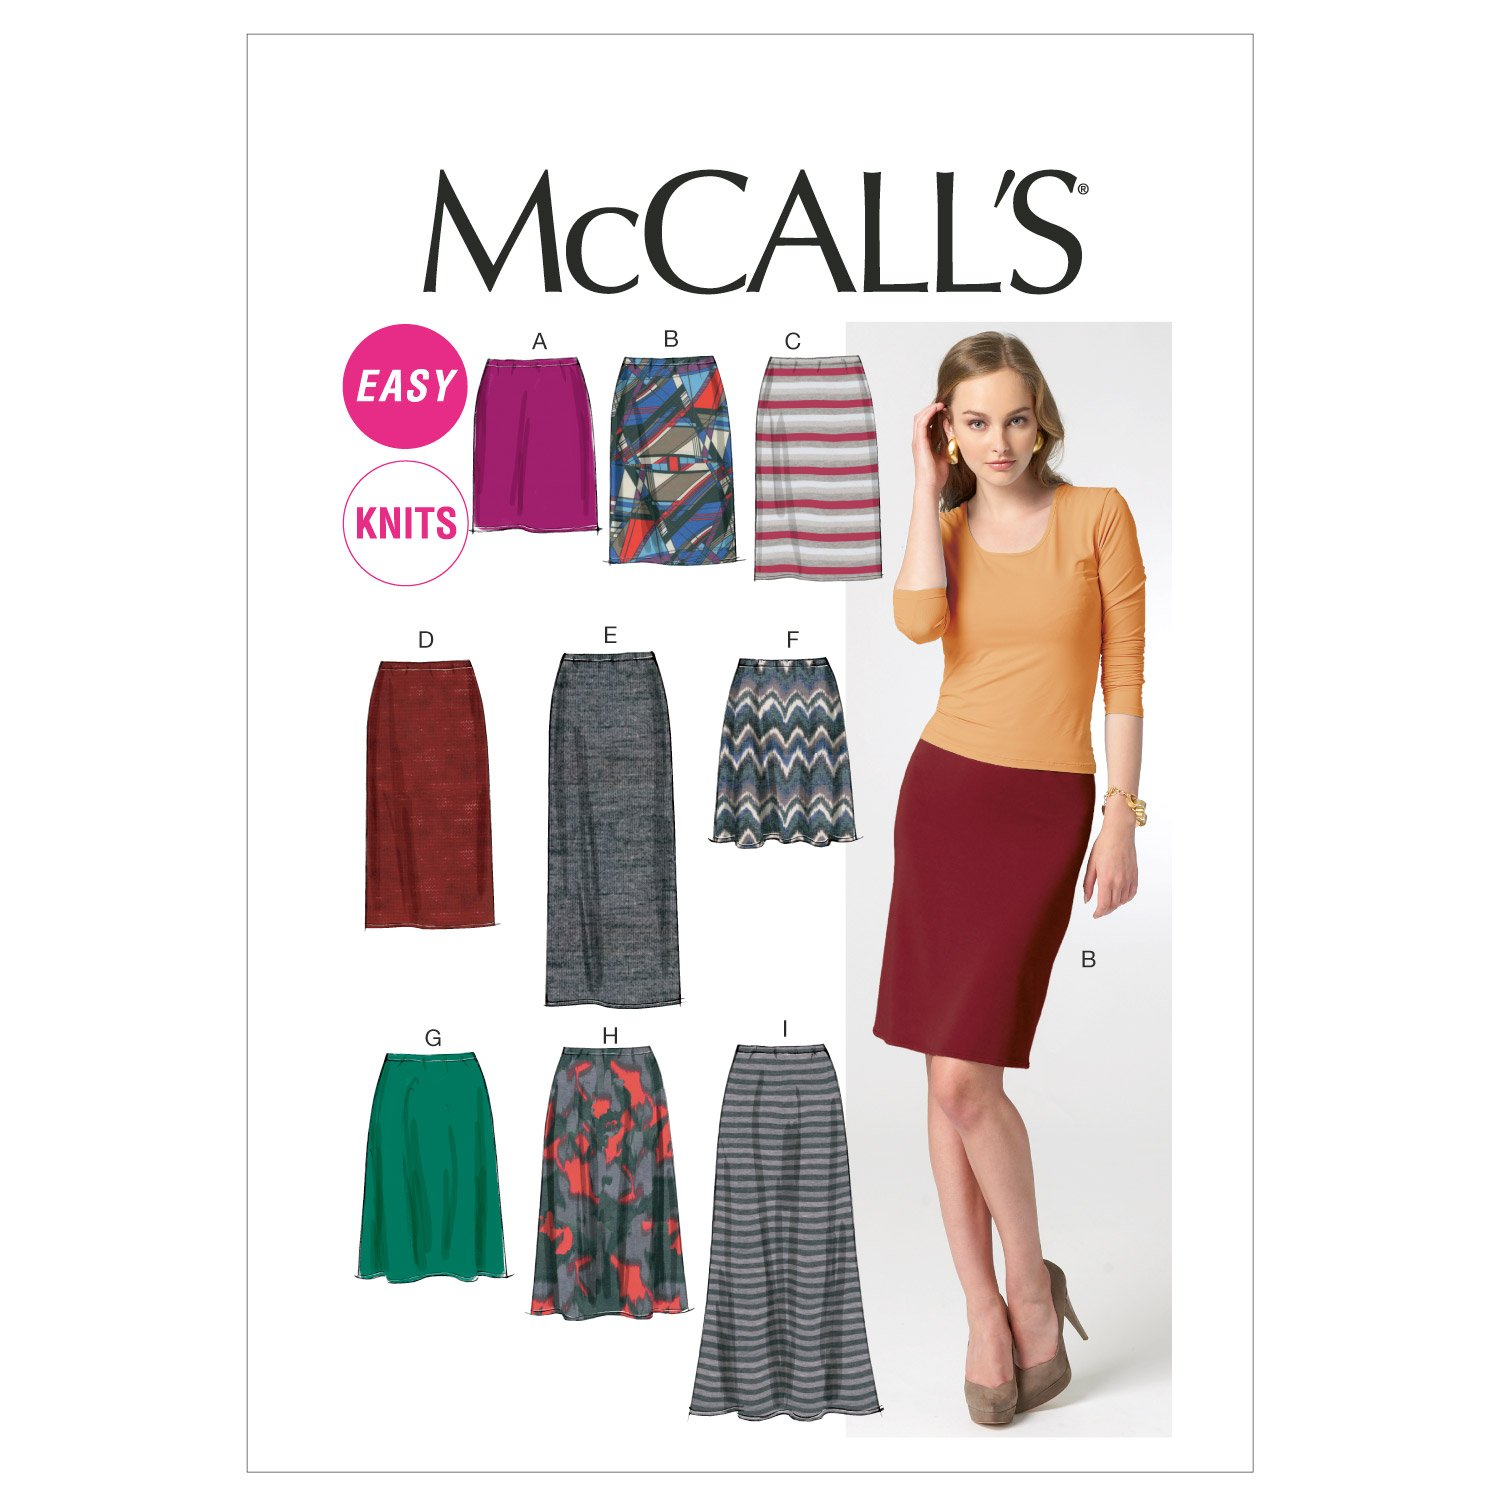 McCall Patterns M6654 Misses' Skirts Sewing Template, Size E5 (14-16-18-20-22) McCall Pattern Company M6654E50